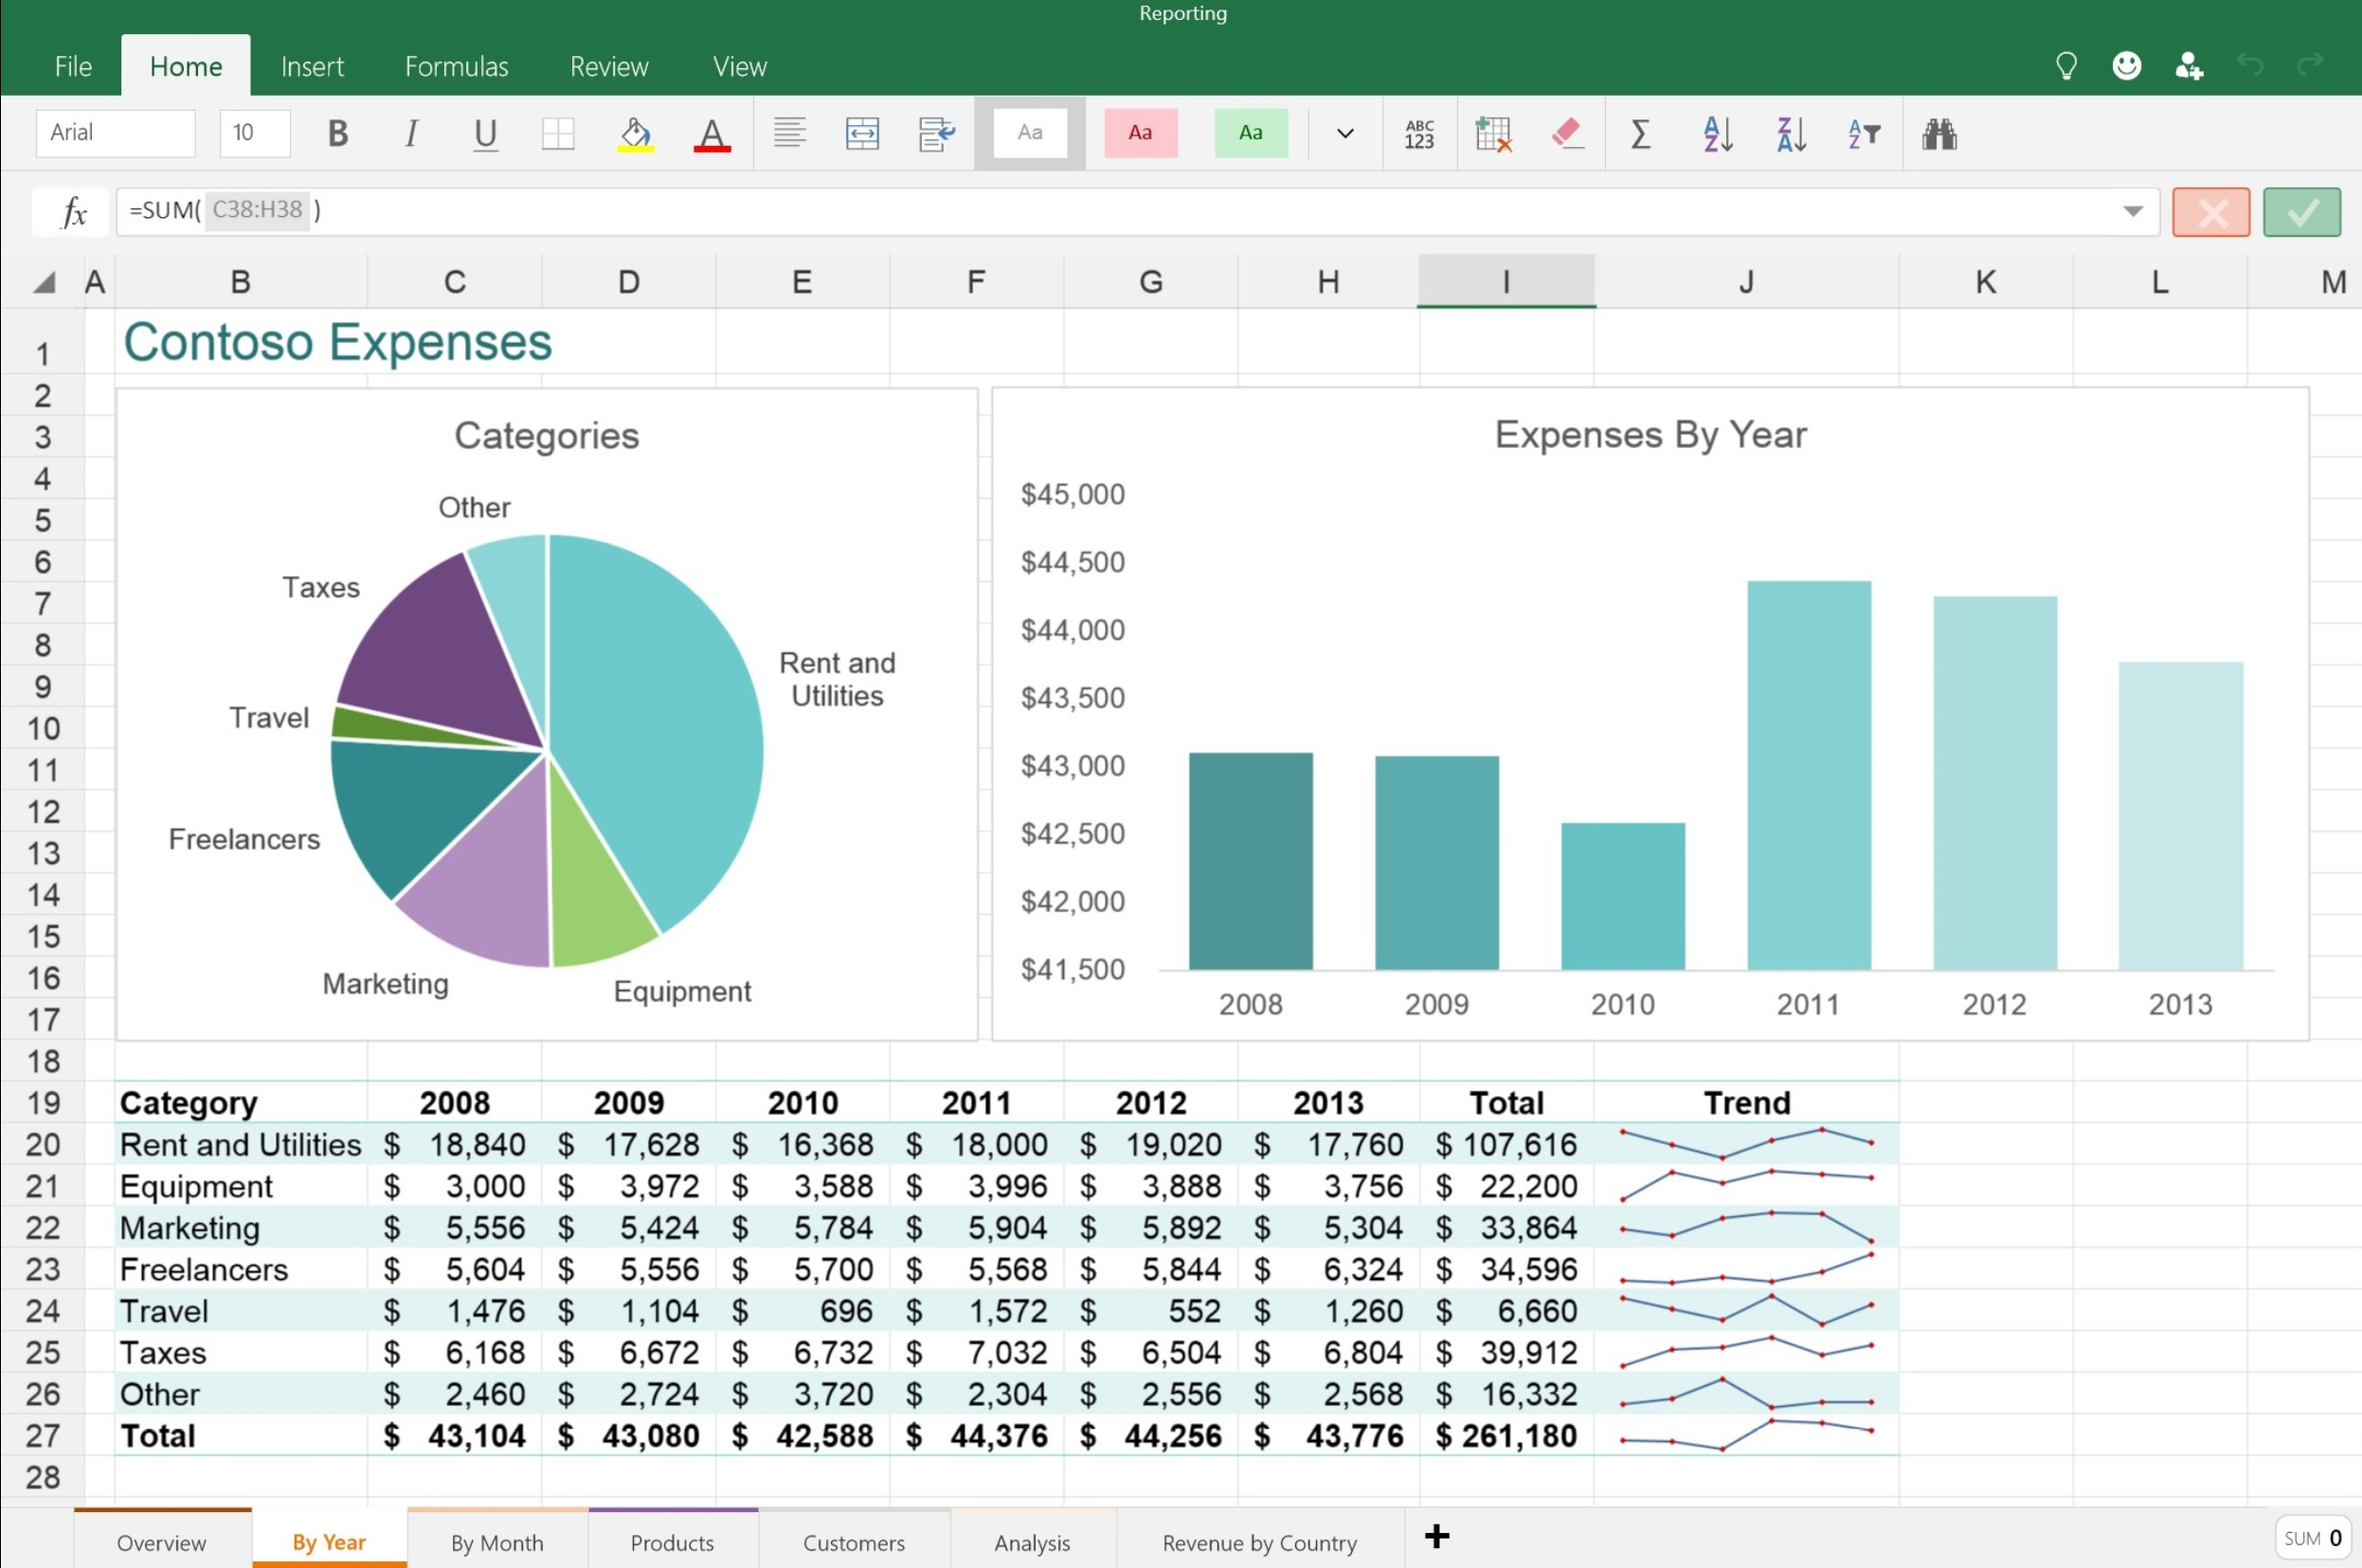 Ediblewildsus  Unique Features Available In The New Word Excel And Powerpoint Apps For  With Extraordinary Excel Touch App  With Amazing Common Size Income Statement Excel Also Microsoft Excel  Trial In Addition Create Excel Drop Down And Excel Add If As Well As Online Excel Course Free Additionally Create A Bar Chart In Excel From Mspowerusercom With Ediblewildsus  Extraordinary Features Available In The New Word Excel And Powerpoint Apps For  With Amazing Excel Touch App  And Unique Common Size Income Statement Excel Also Microsoft Excel  Trial In Addition Create Excel Drop Down From Mspowerusercom